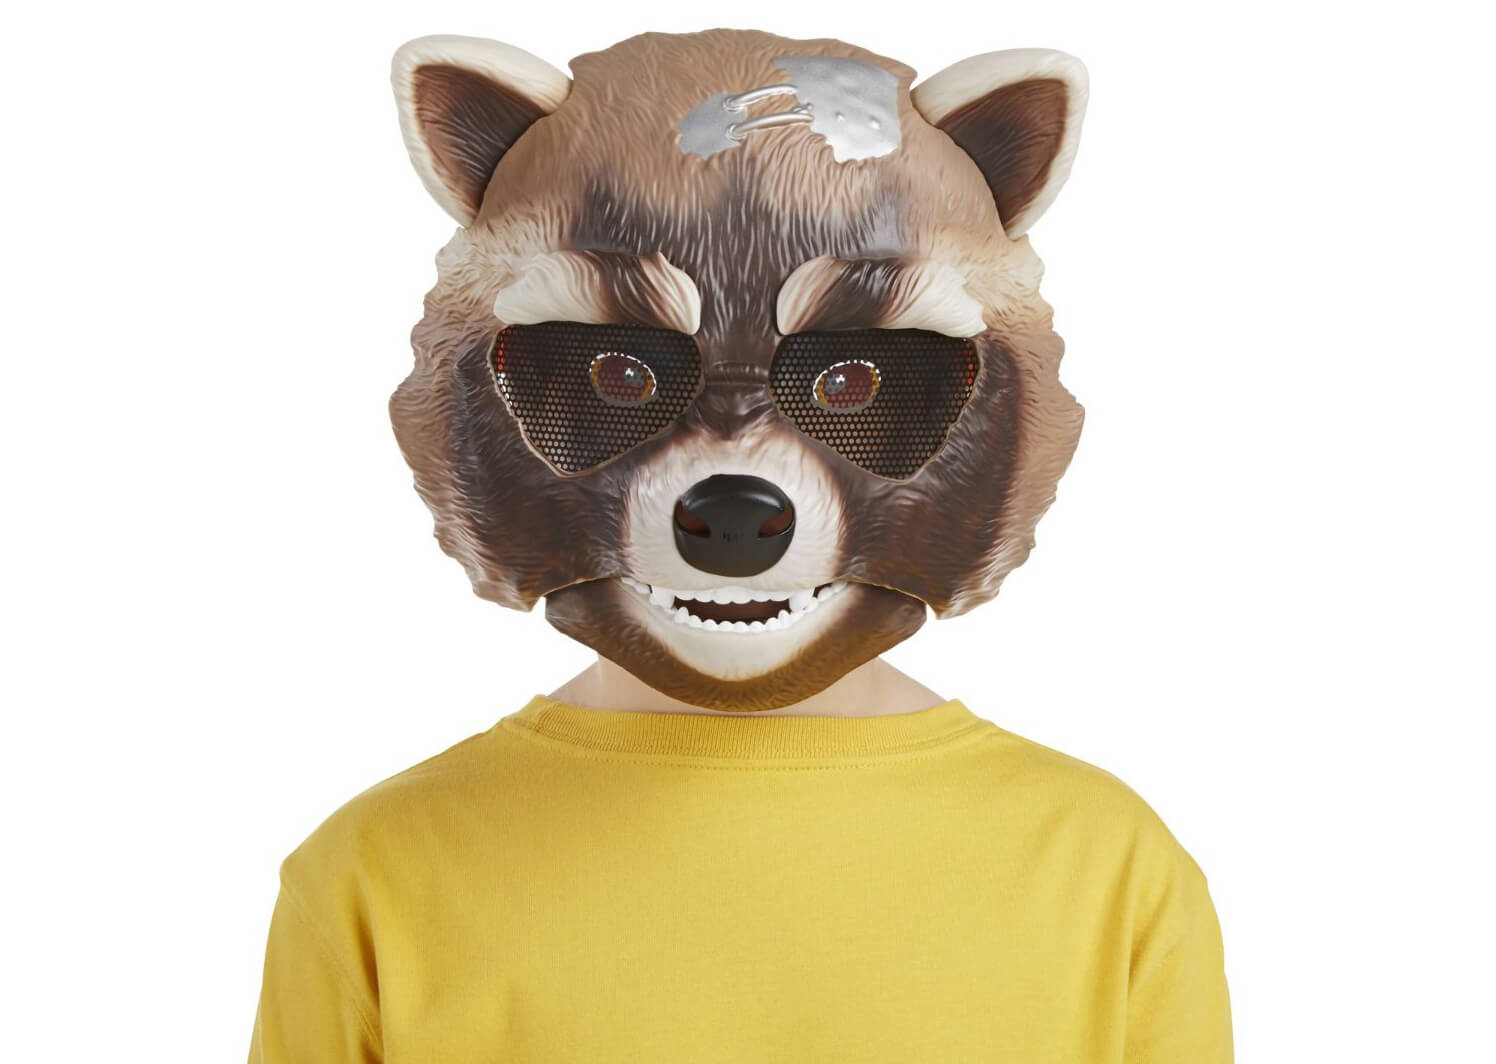 laser-time-rocket-racoon-mask-guardians-of-the-galaxy